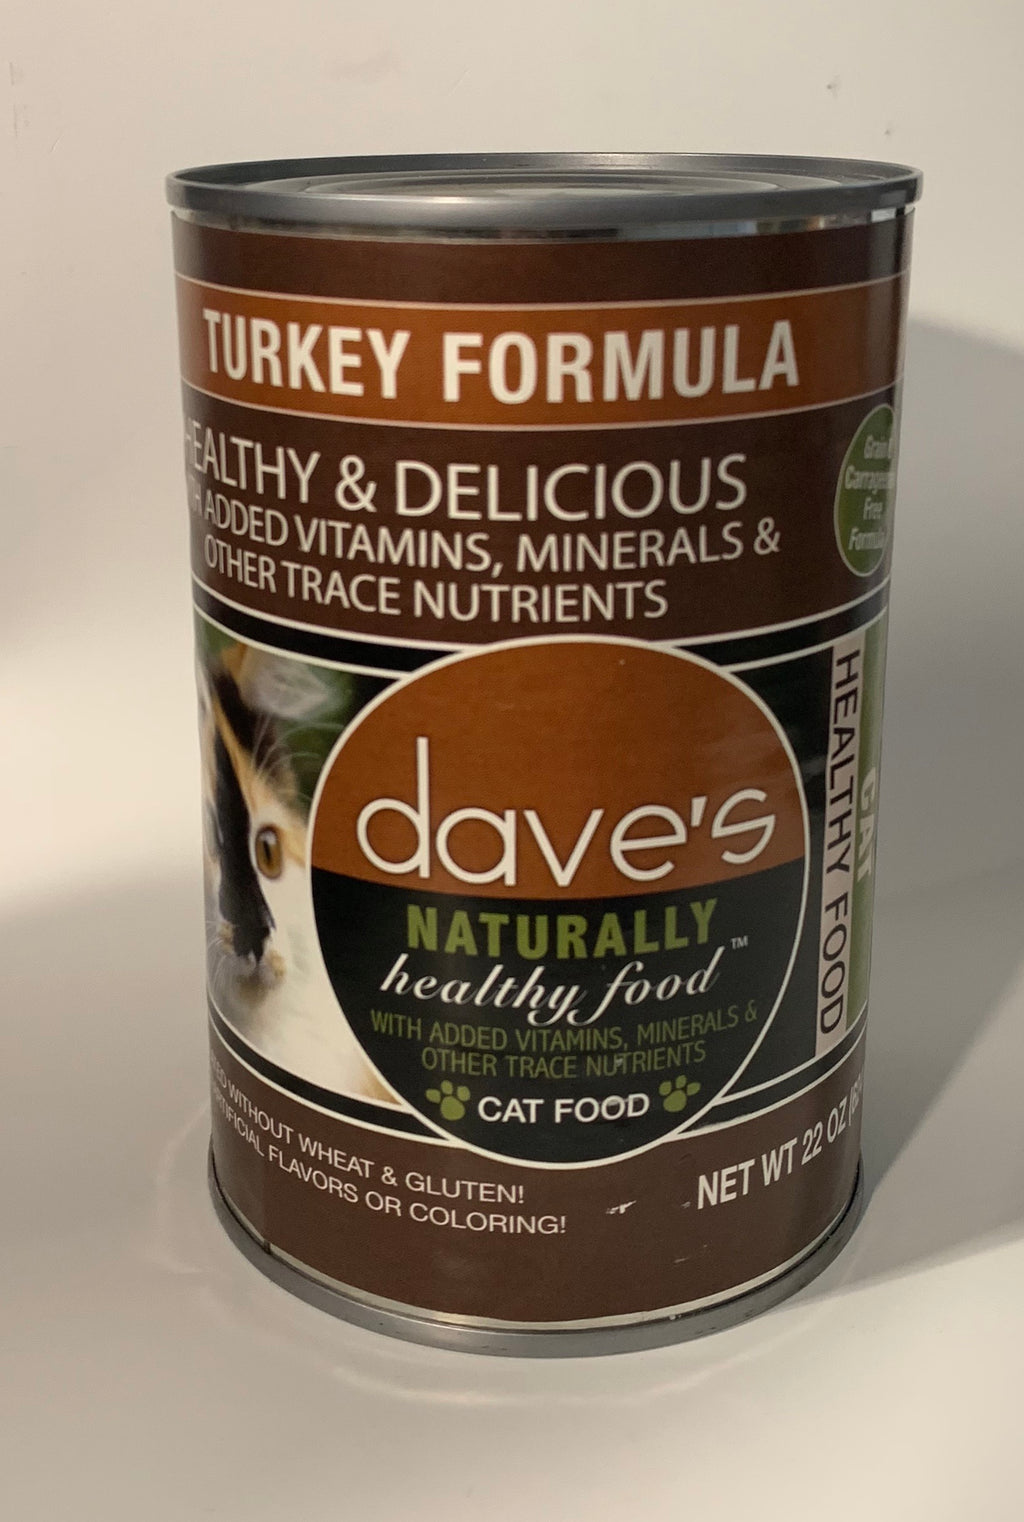 Dave's Naturally Healthy Chicken Formula Canned Cat Food 22oz can case of 12